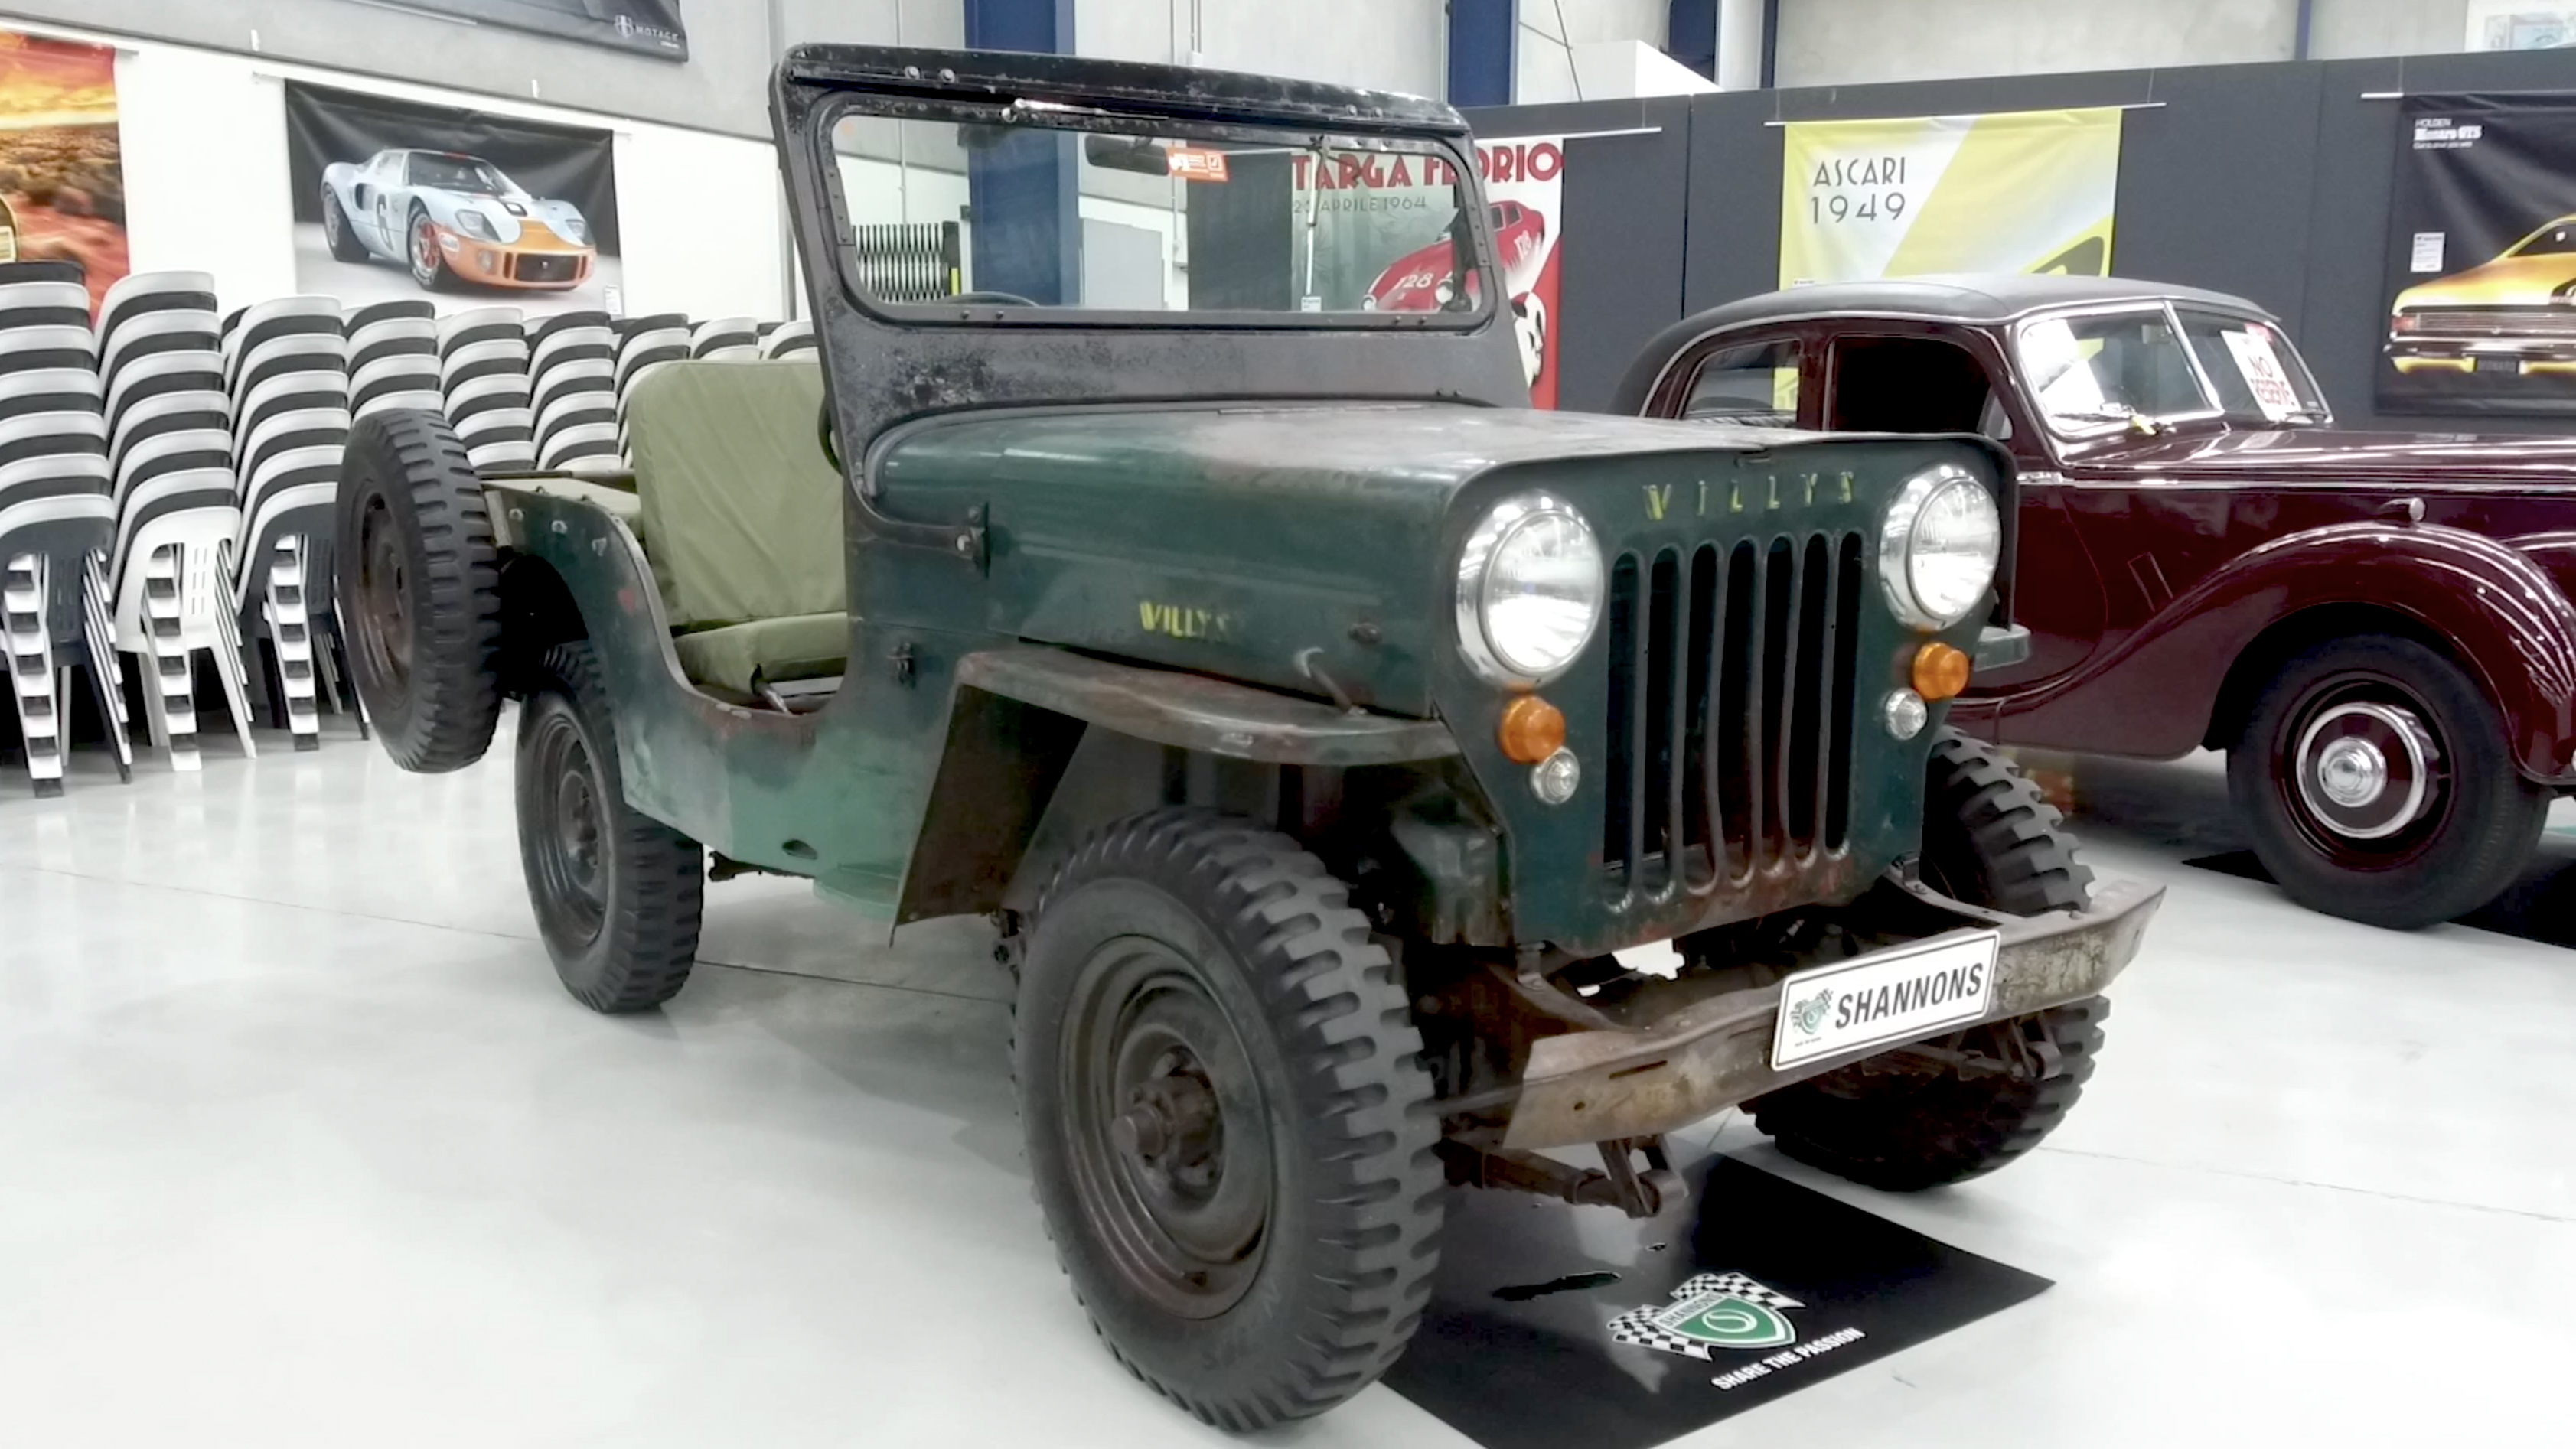 1958 Willys Jeep CJ-3B - 2020 Shannons Spring Timed Online Auction